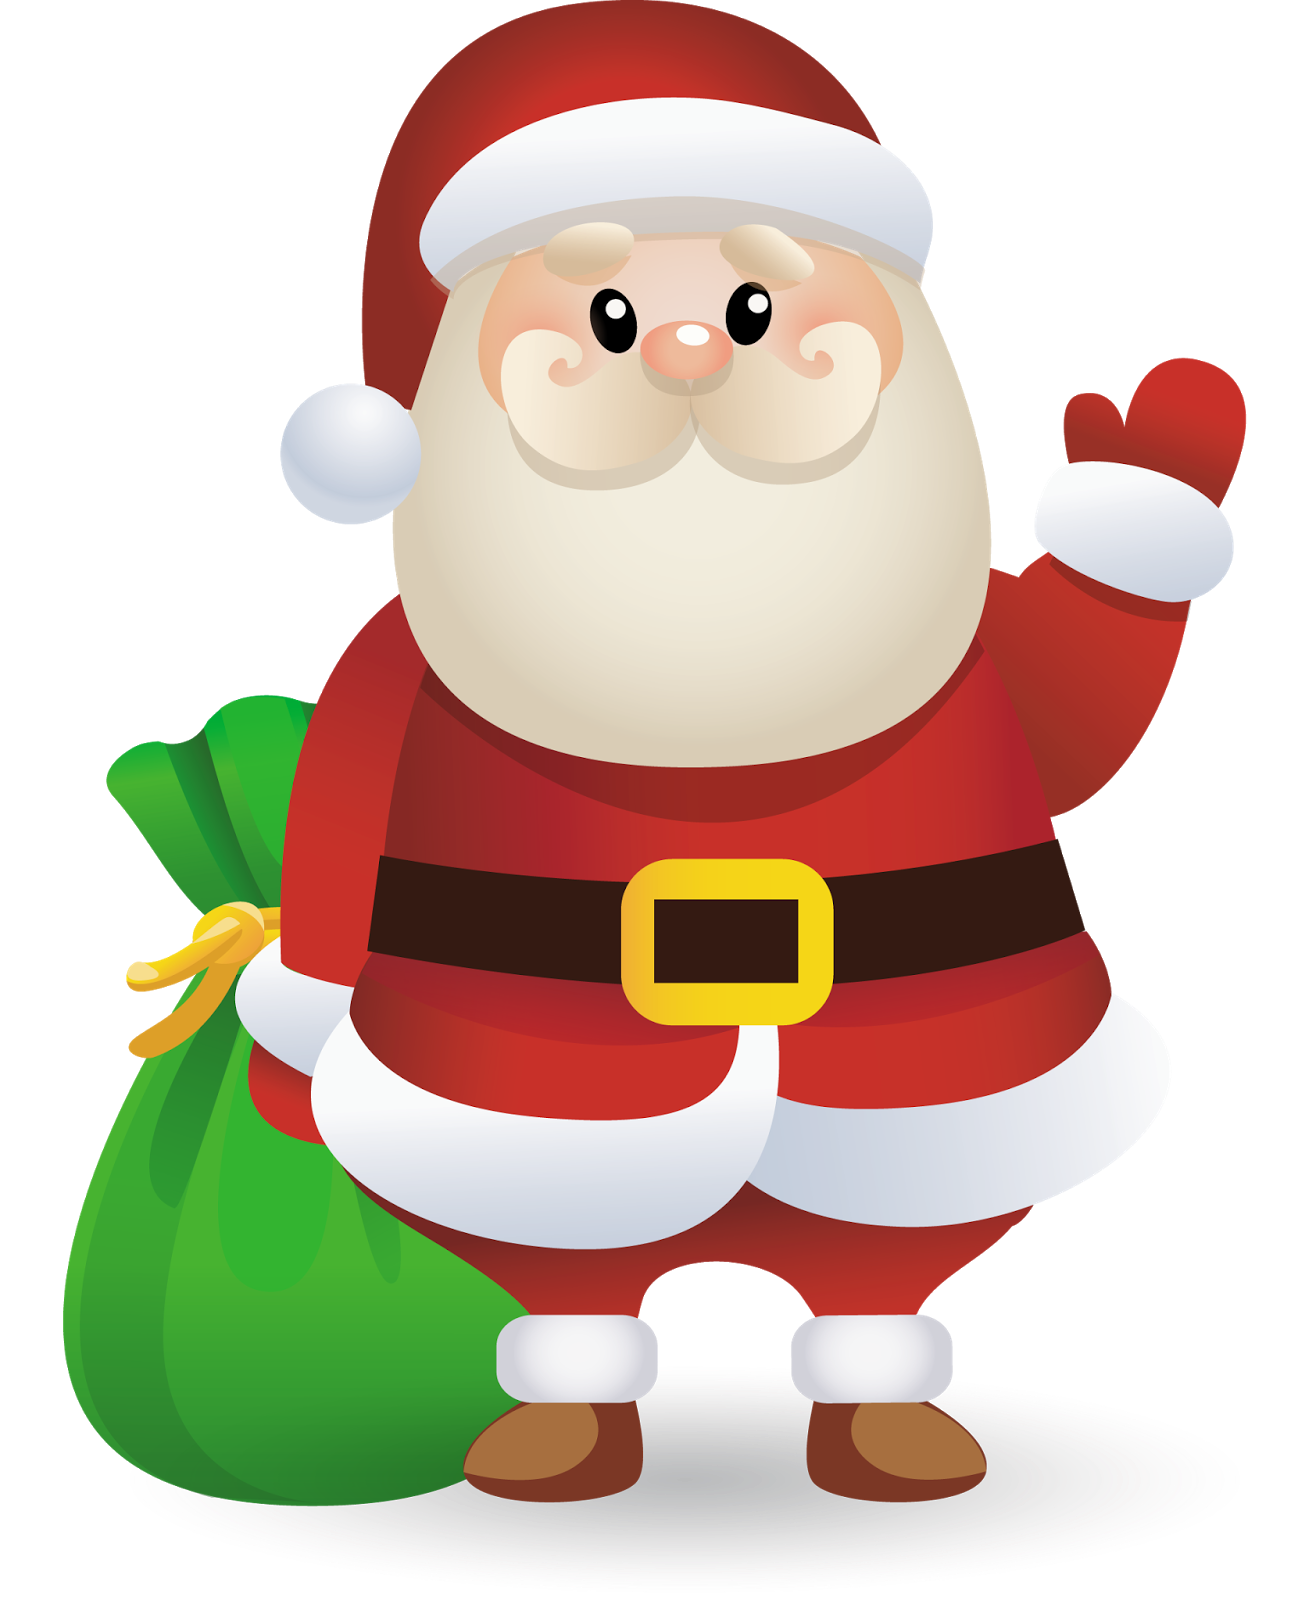 picture royalty free library Grinch clipart outfit santa. Pin by josiane aparecida